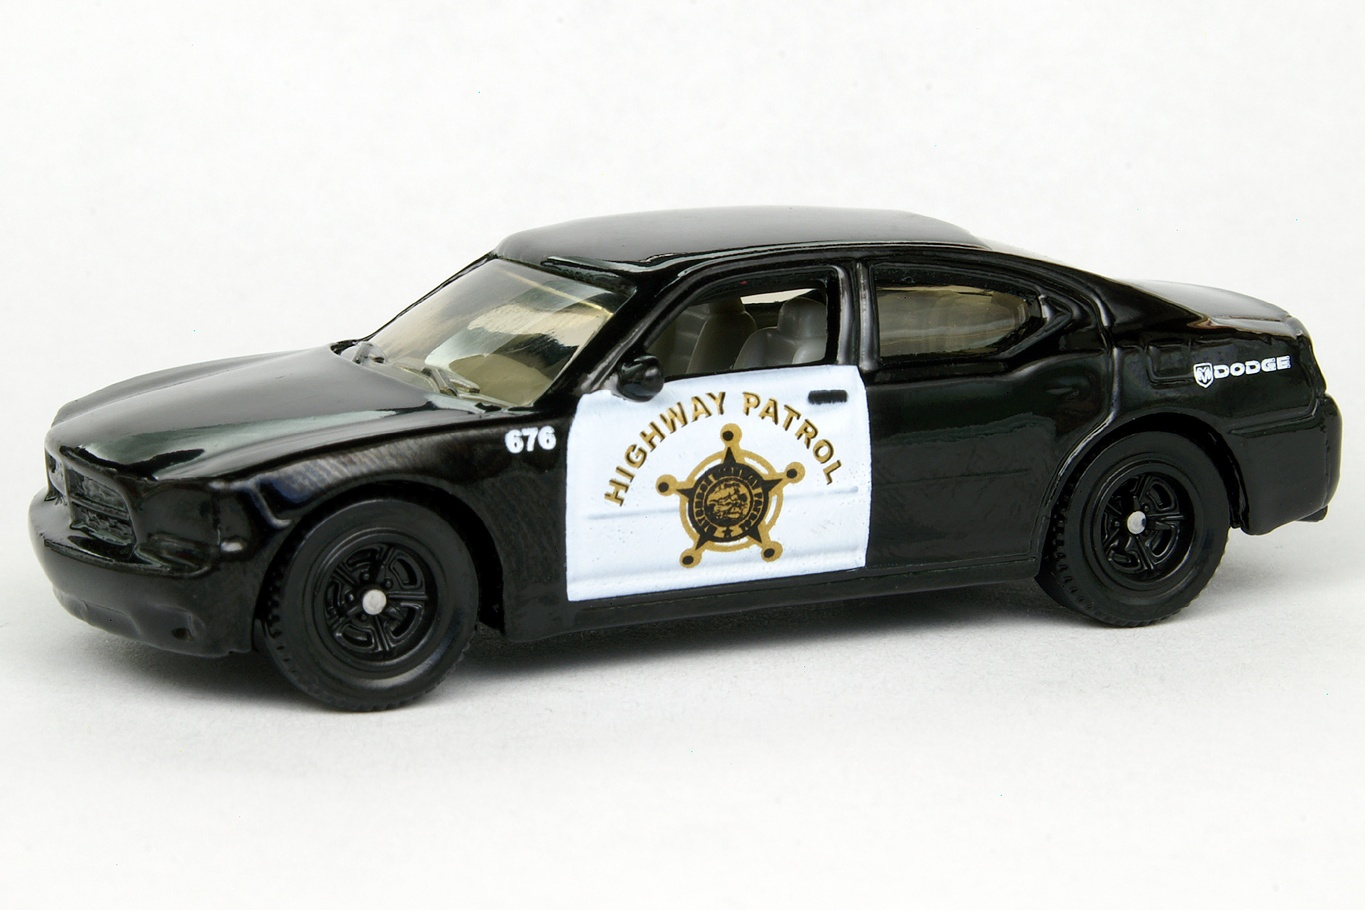 Image - Dodge Charger Police - 8786df.jpg | Matchbox Cars Wiki | FANDOM powered by Wikia